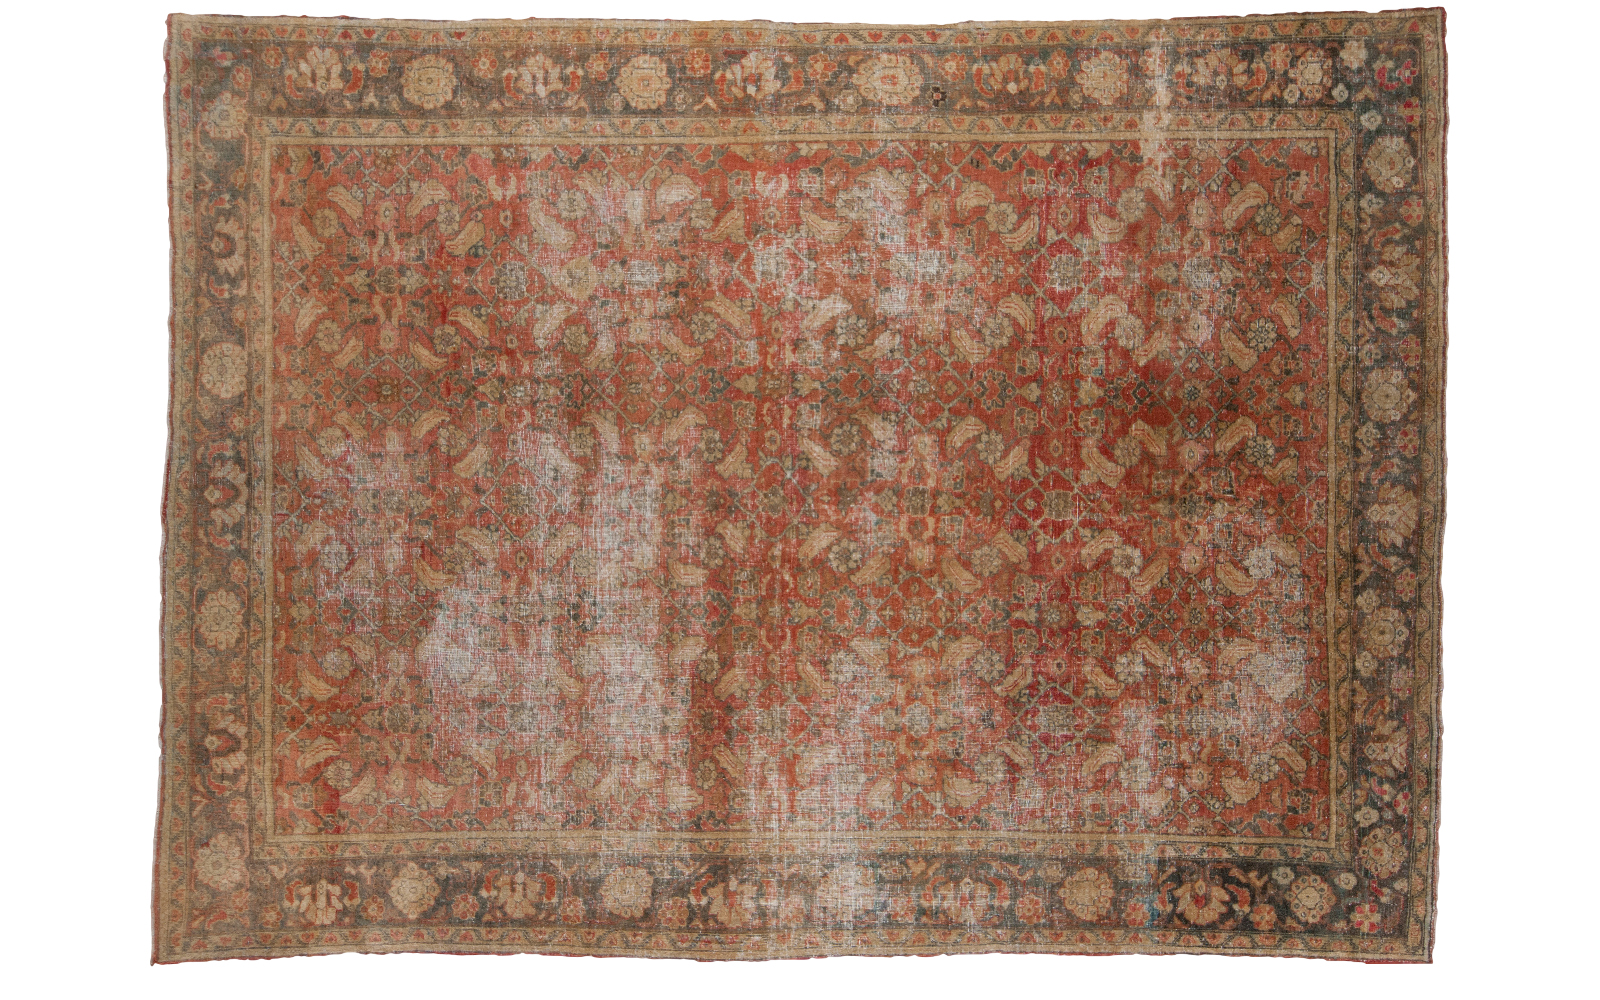 Vintage Persian Carpet